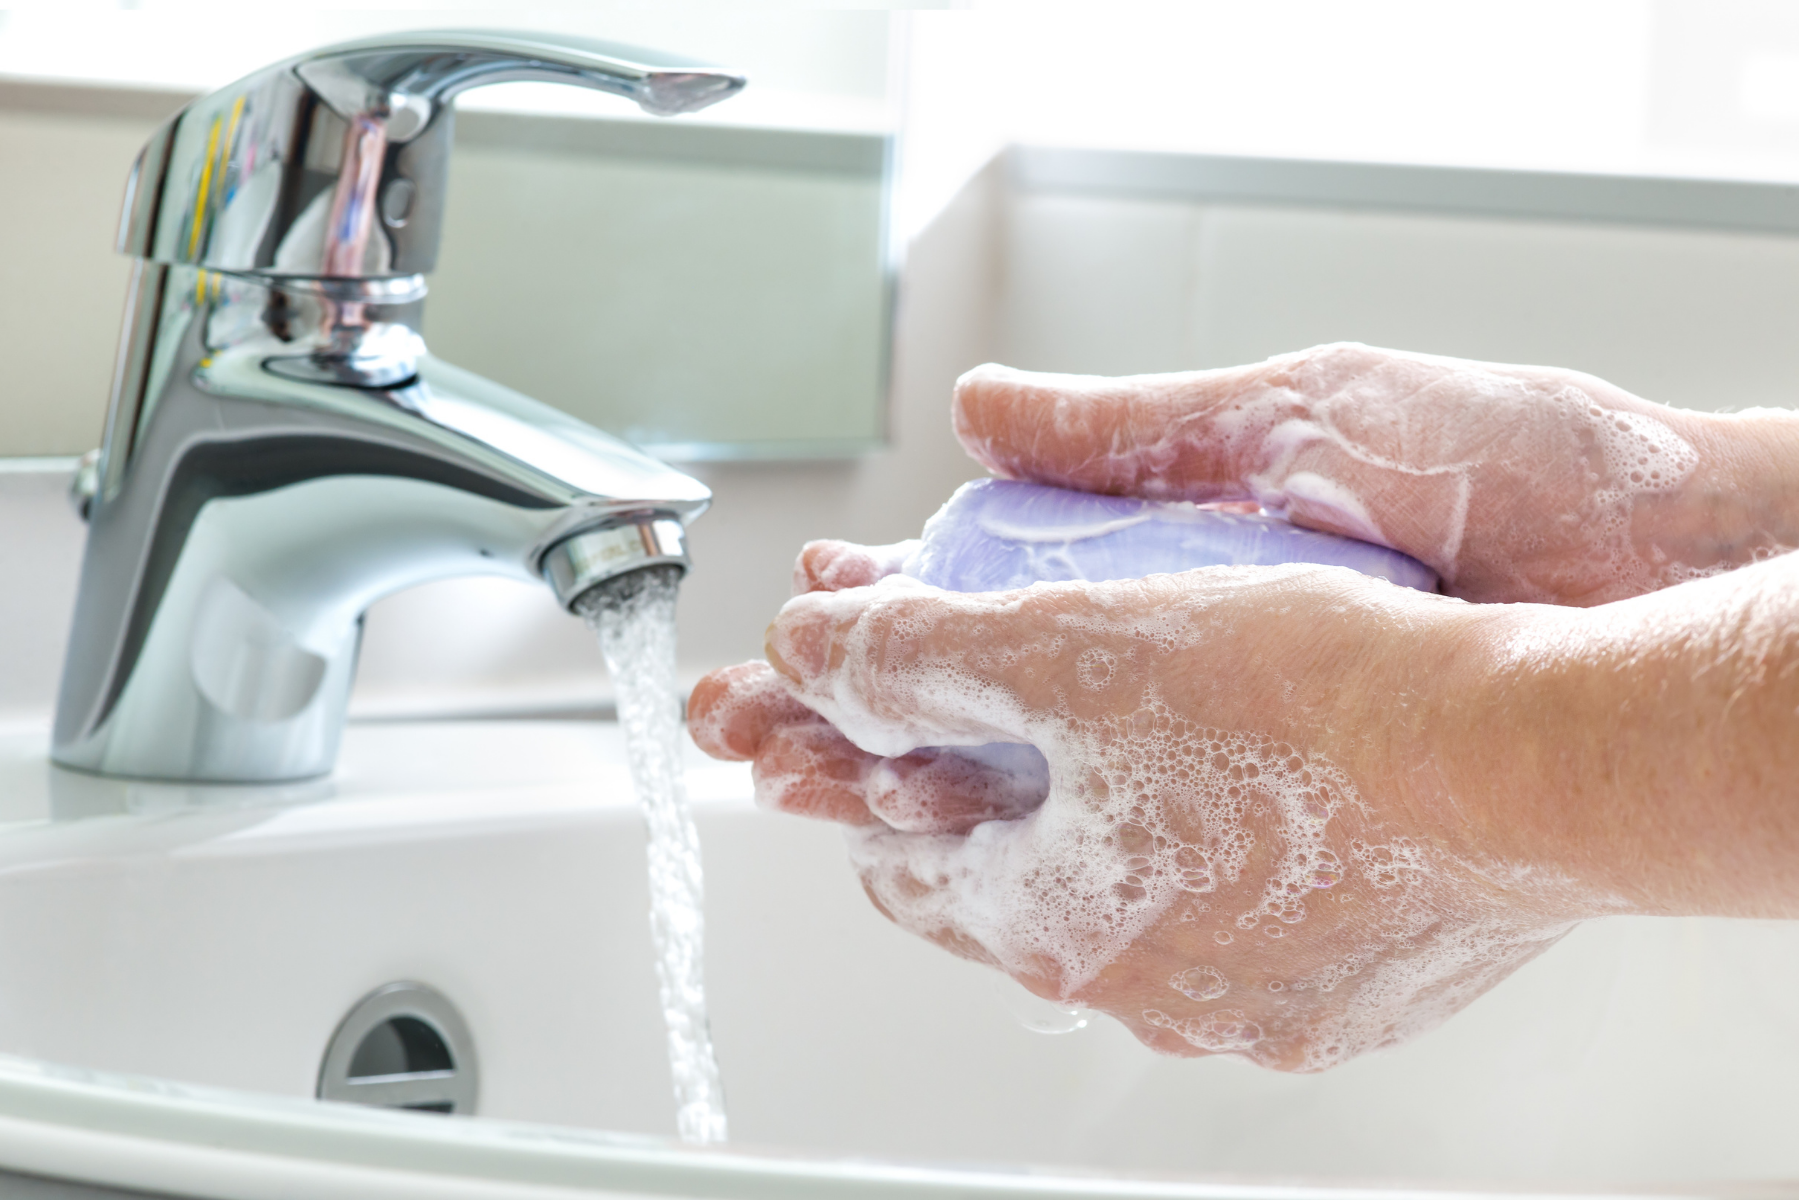 Person cleaning their hands in a sink with hand soap